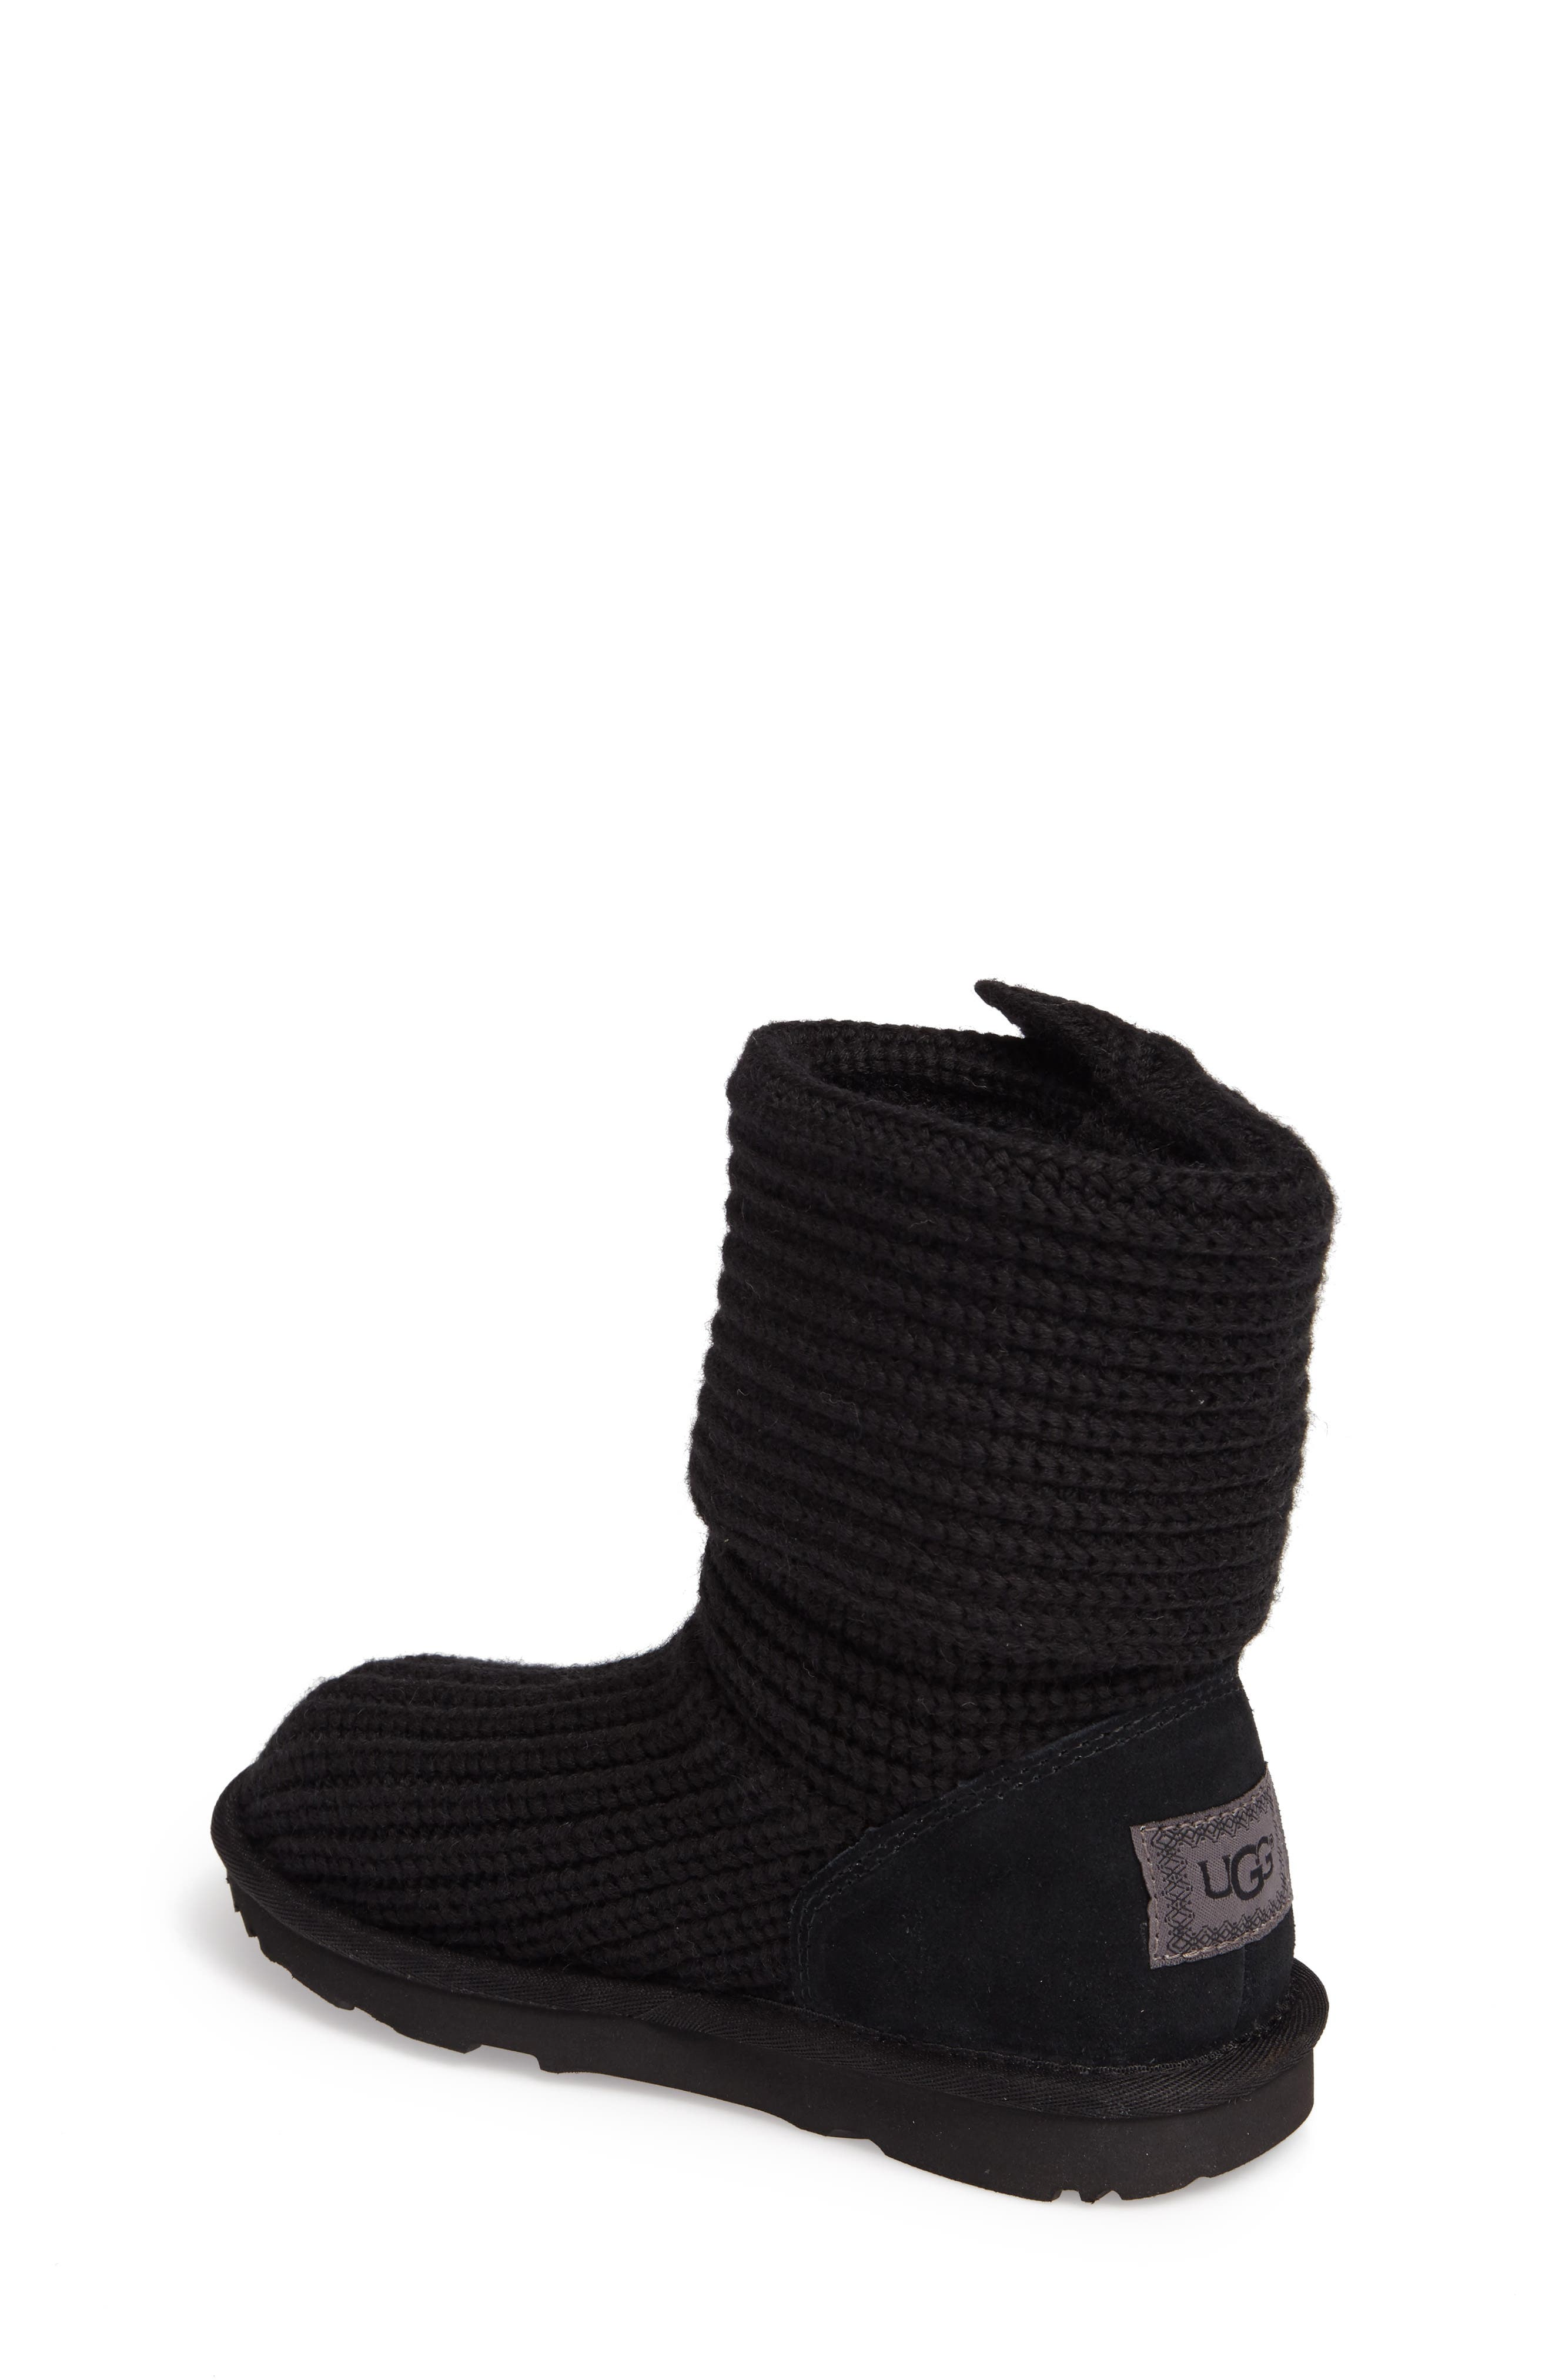 Cardy II Cableknit Bootie,                             Alternate thumbnail 2, color,                             Black